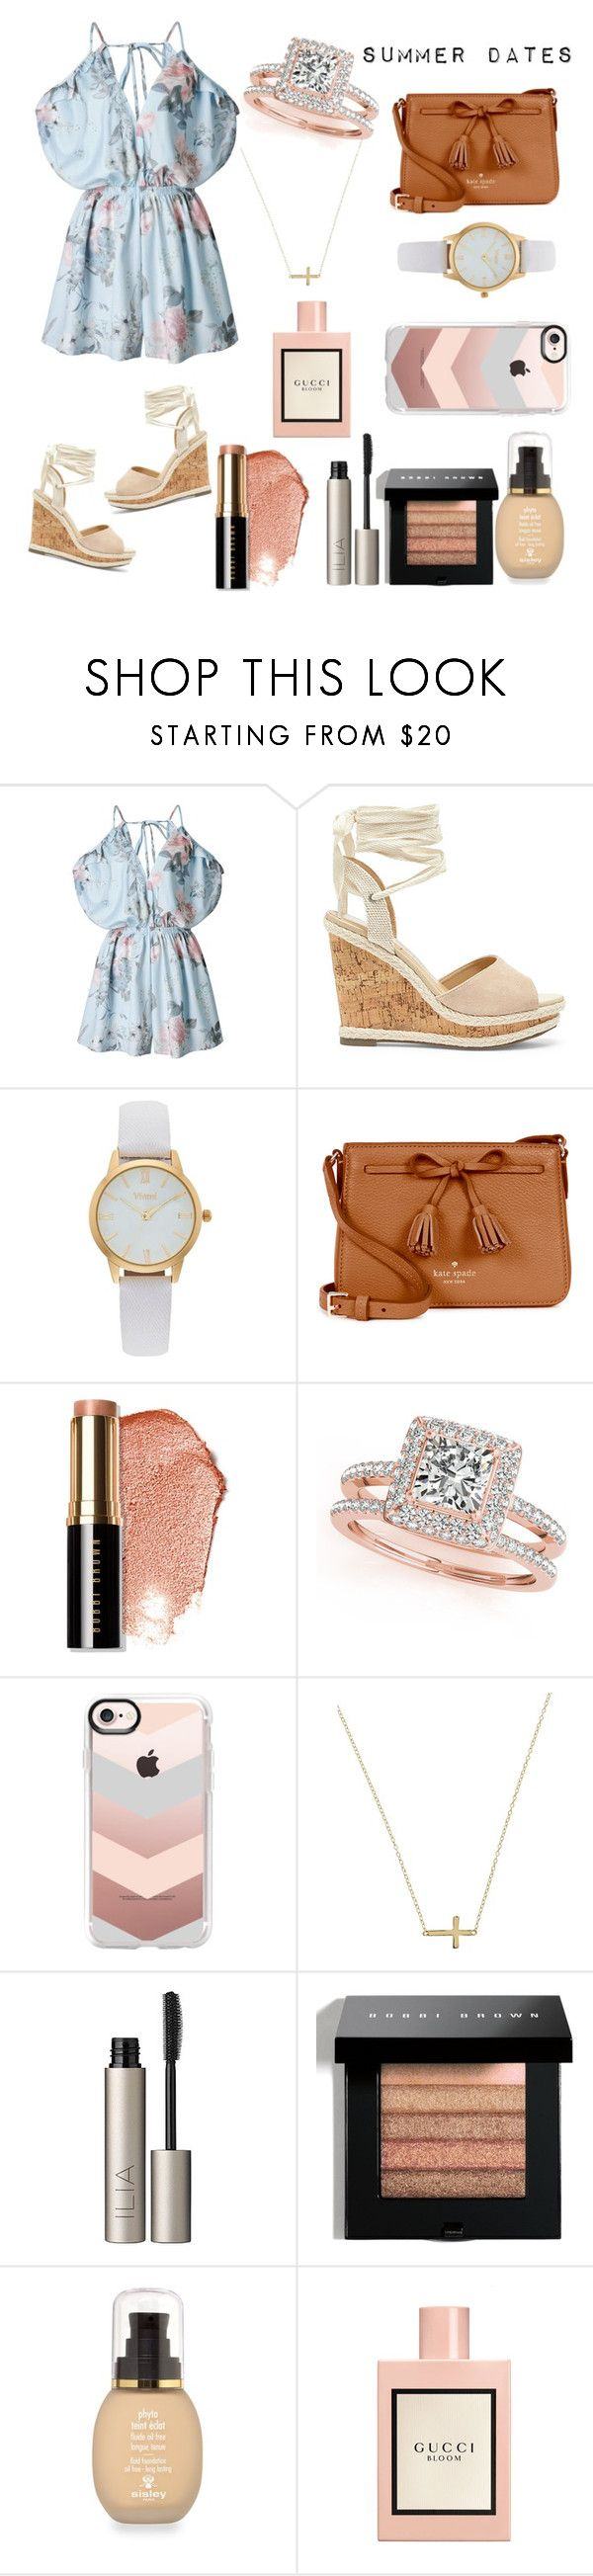 """""""Summer Engagement"""" by rhiley04 ❤ liked on Polyvore featuring Sole Society, Vivani, Kate Spade, Bobbi Brown Cosmetics, Allurez, Casetify, Lord & Taylor, Ilia, Sisley and Gucci"""